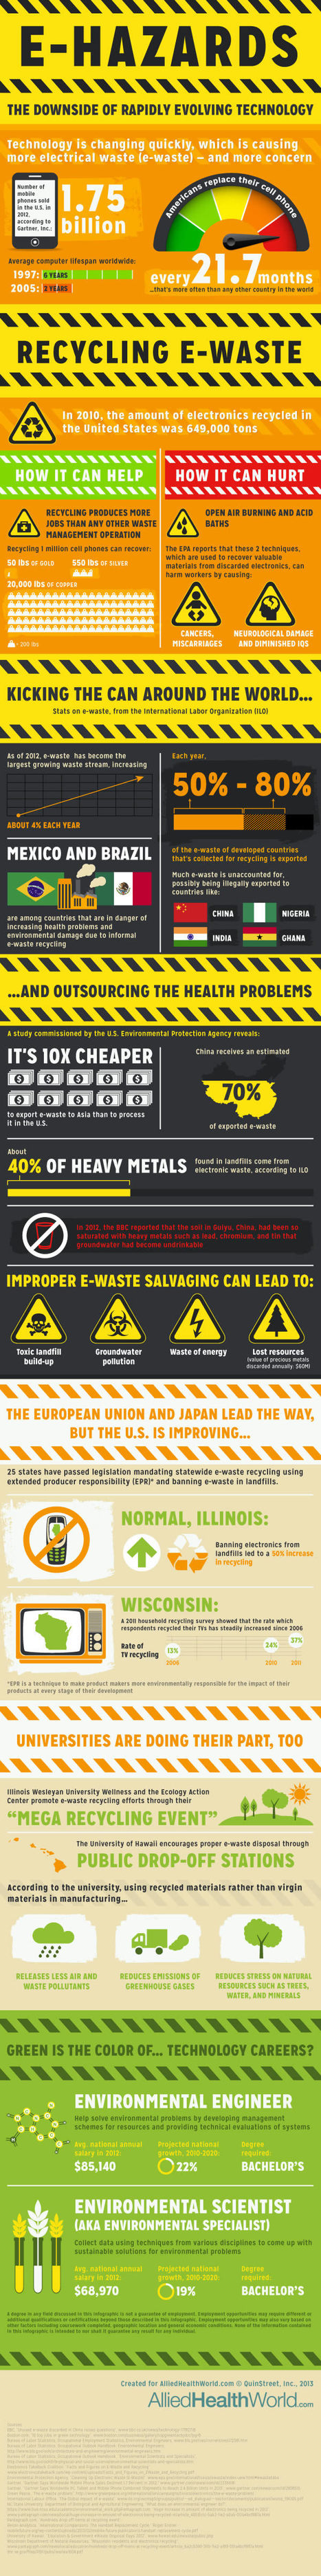 E-Hazards: Manifest Tragedy [Infographic] | JOIN SCOOP.IT AND FOLLOW ME ON SCOOP.IT | Scoop.it